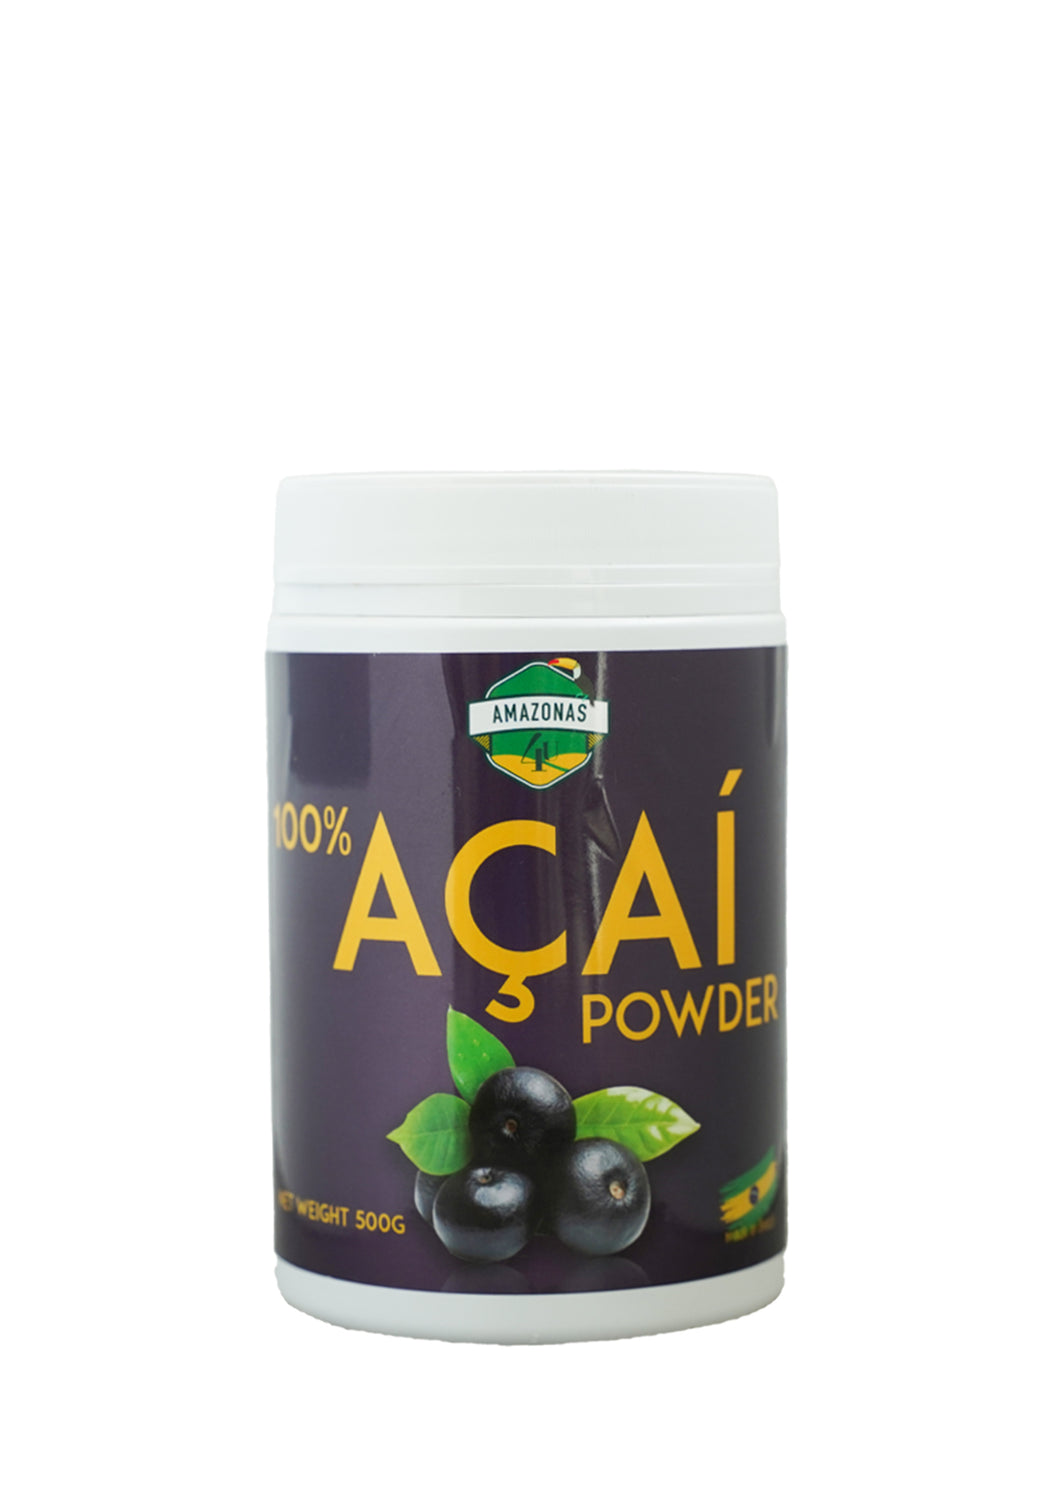 AÇAI POWDER 500G BOTTLE